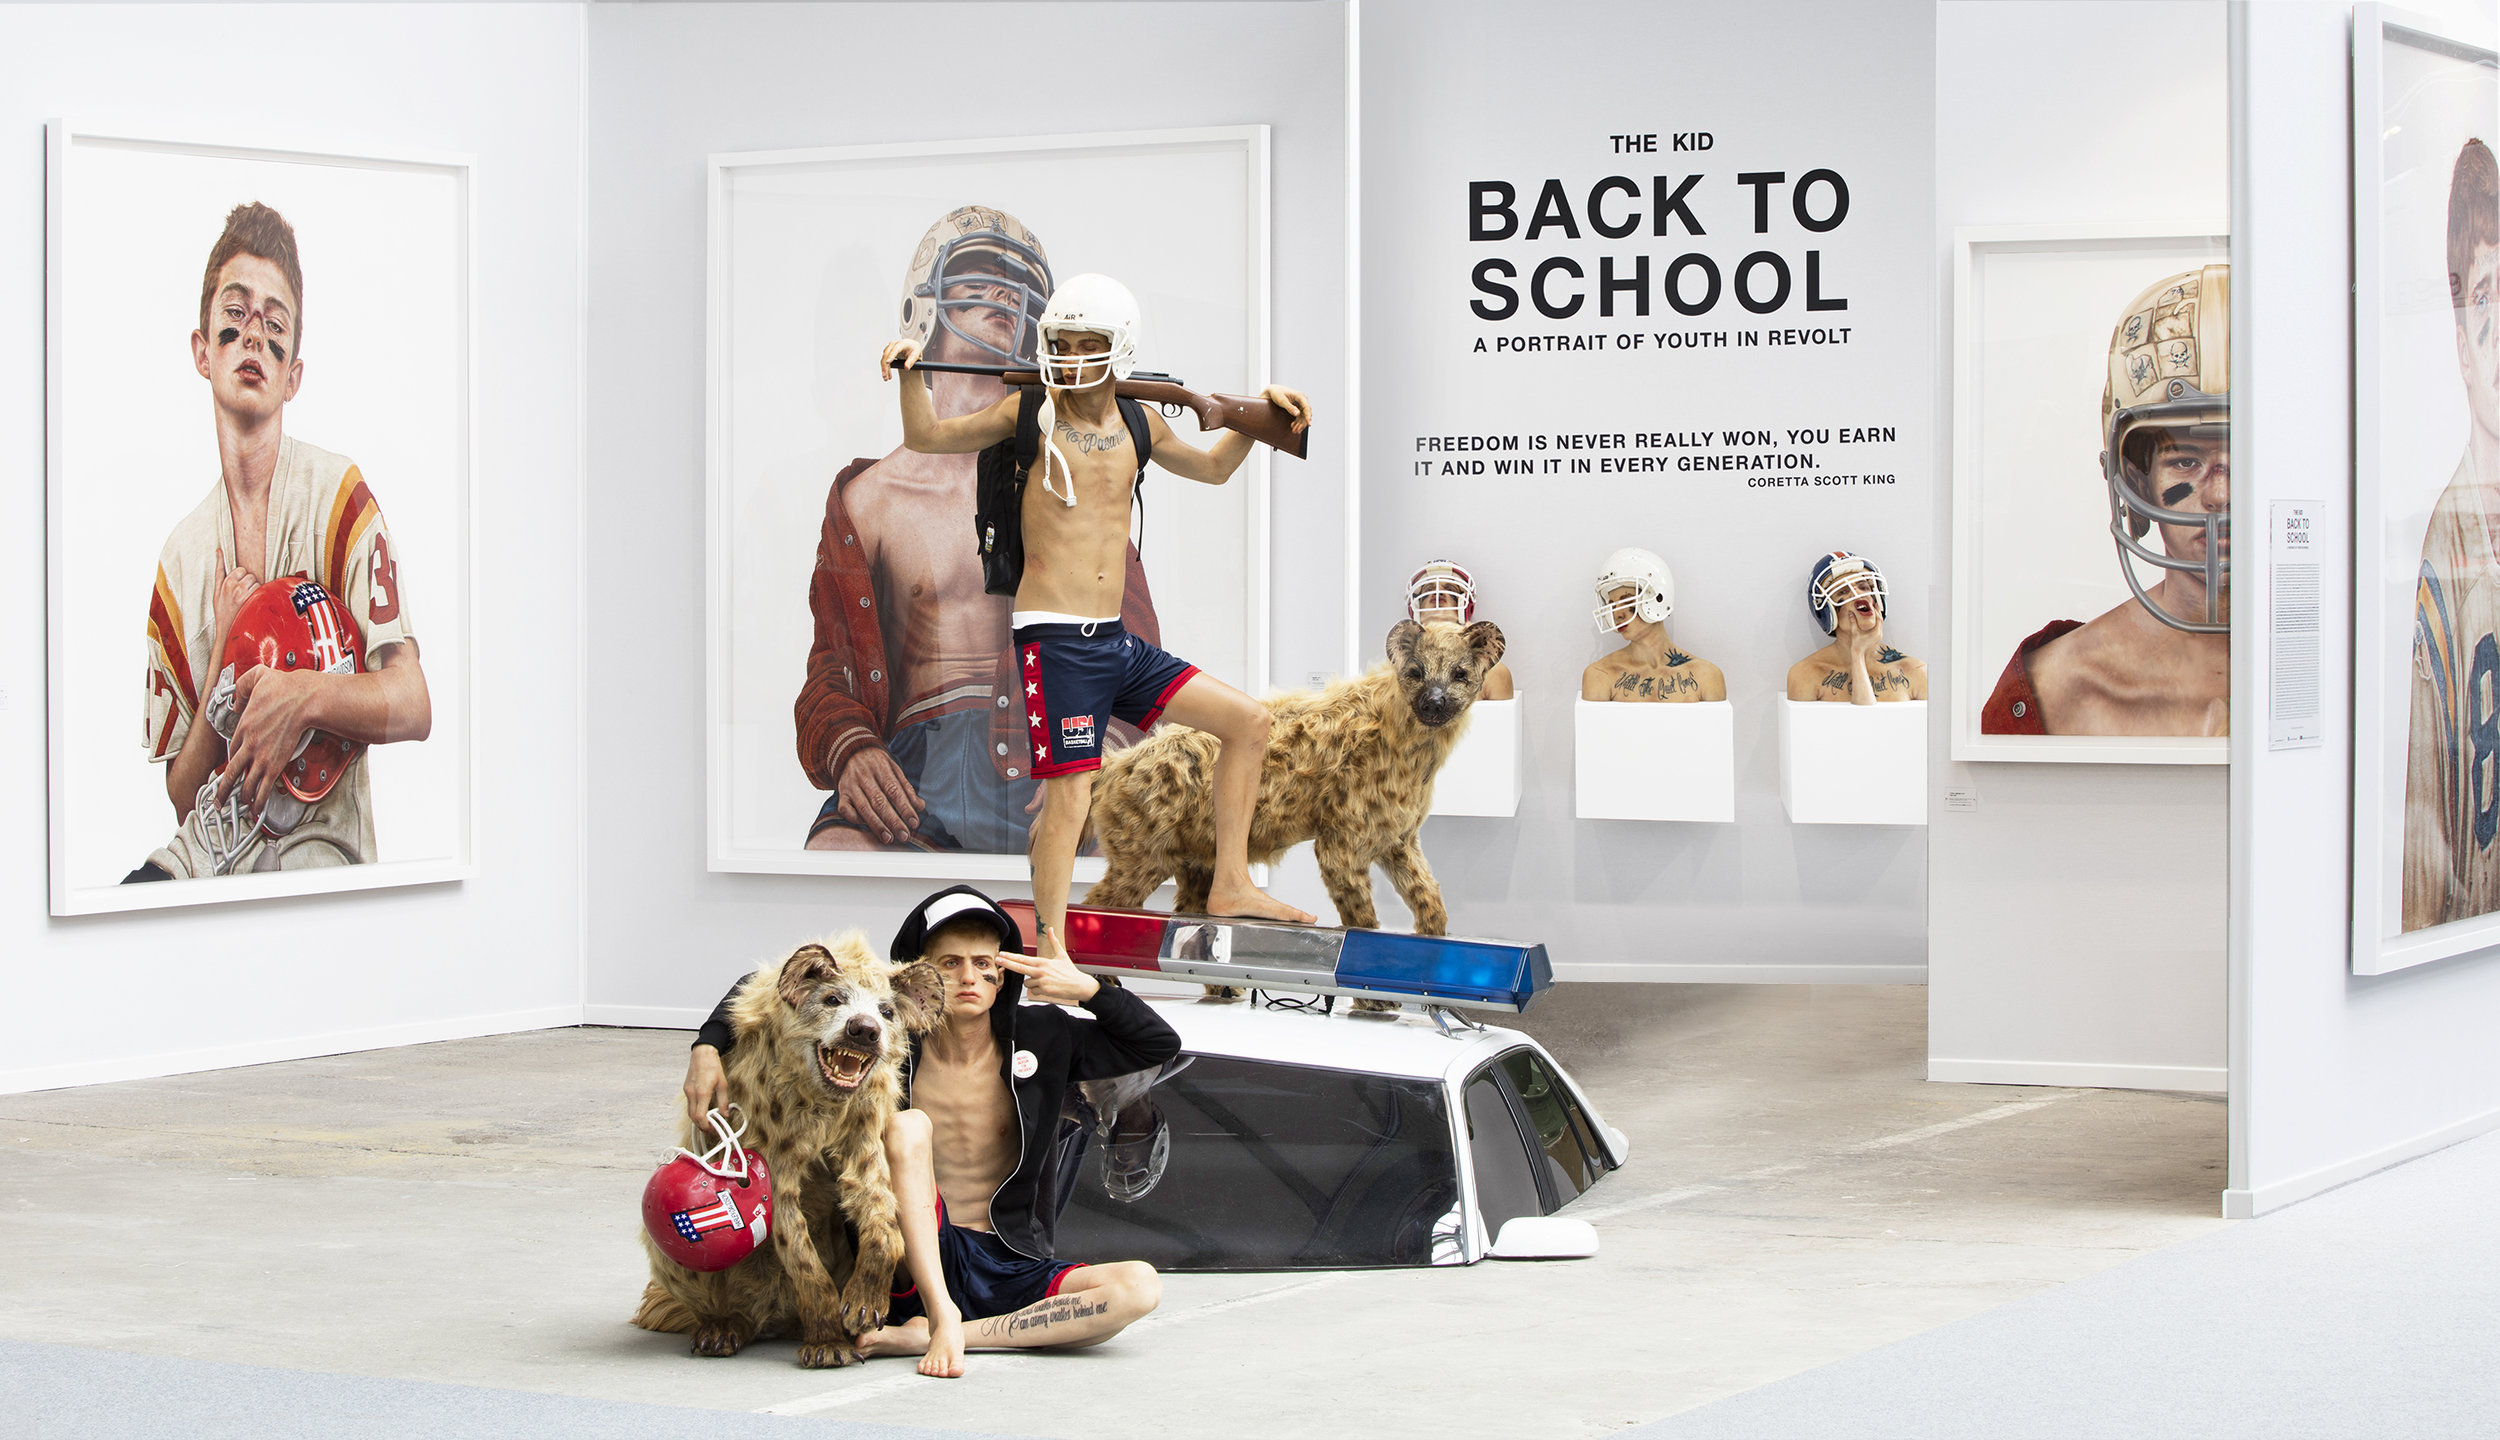 THE KID : BACK TO SCHOOL - A Portrait Of Youth In Revolt . Solo Show. Installation, paintings, sculptures. ART PARIS 2017. GRAND PALAIS, Paris. March 30 - April 2, 2017